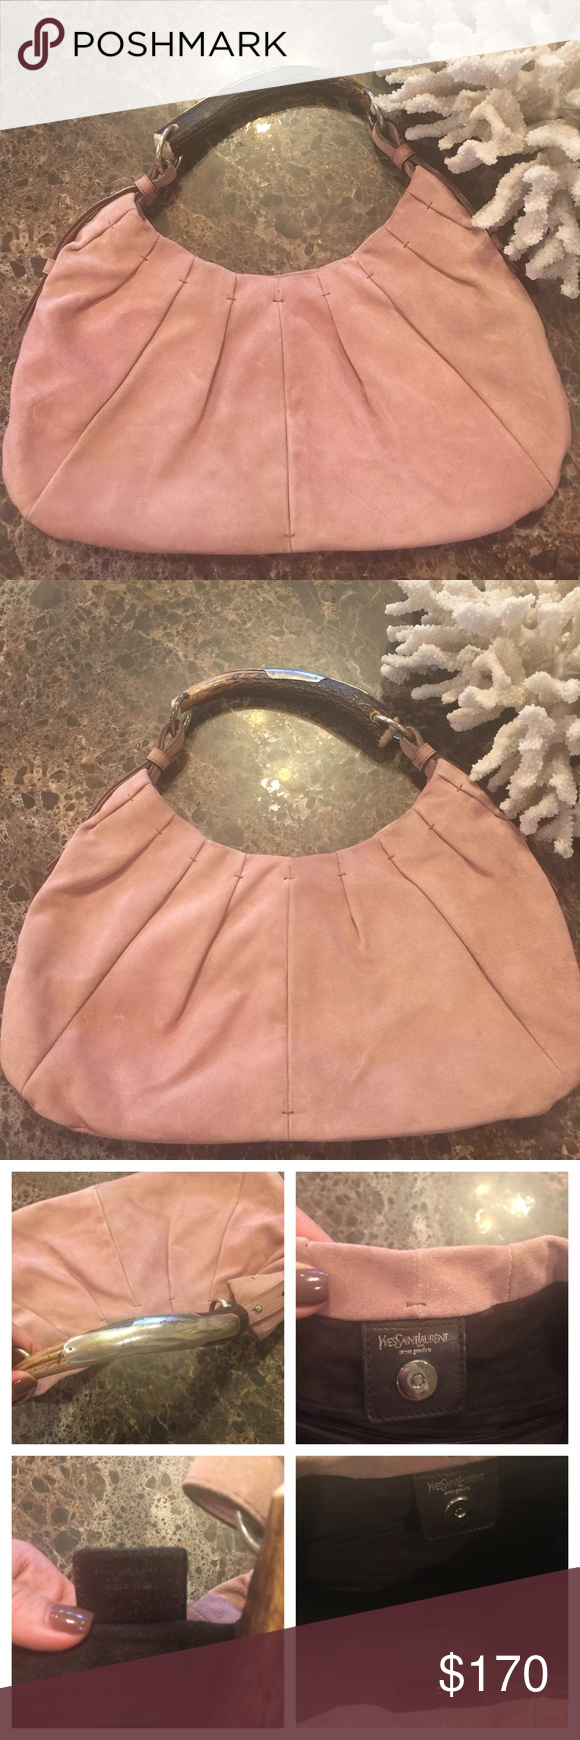 Yves Saint Laurent Mombasa Horn Handbag Beautiful Handbag!!! It is 100% authentic!! The color a pink suede is very trendy! It has been gently worn. Please look at all pictures carefully for signs of wear. Overall in a very good Condition!!! Measurements coming Soon!! Yves Saint Laurent Bags